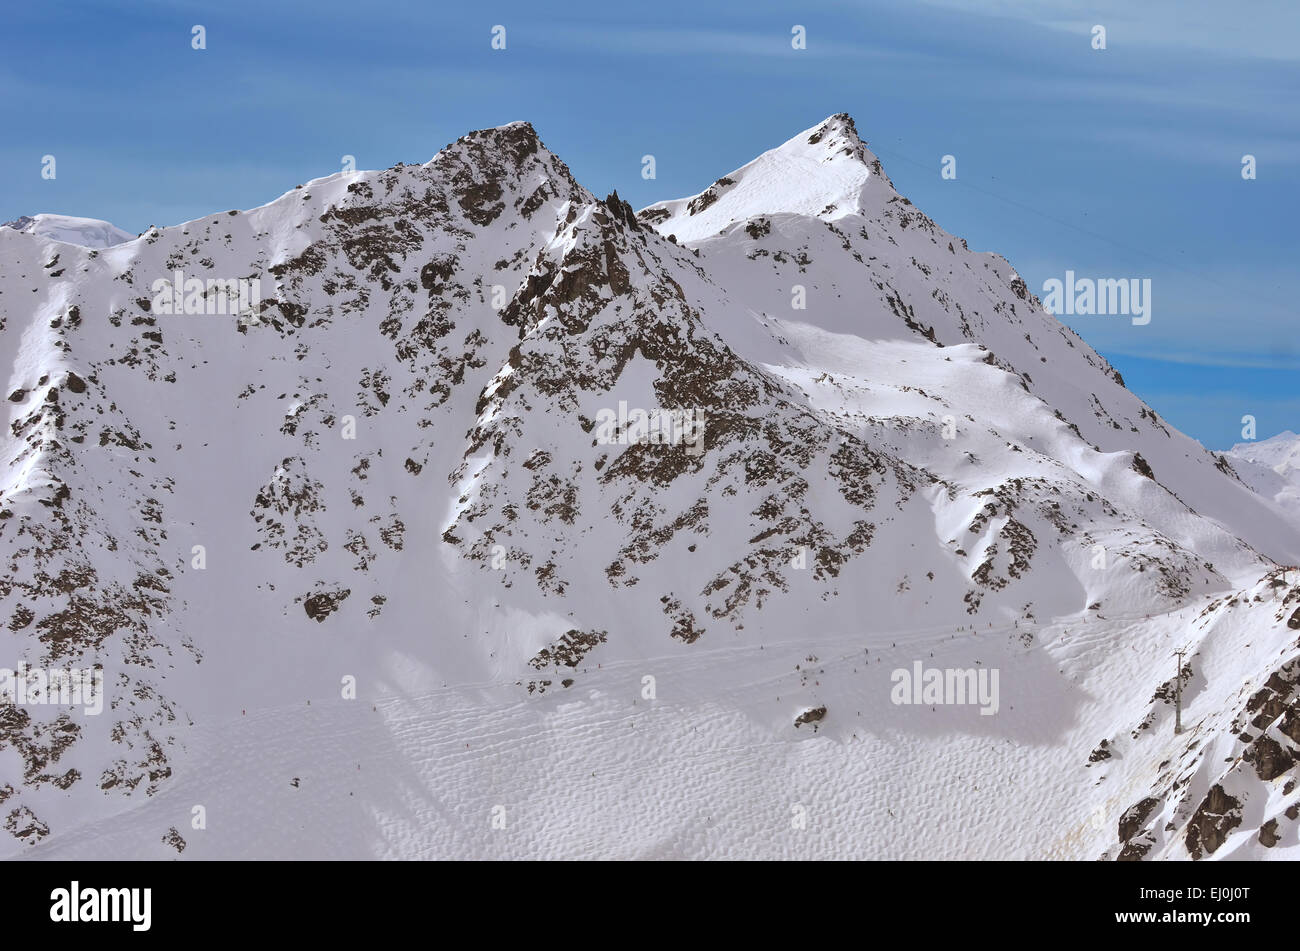 Off piste skiing in Verbier 4 Valleys, Switzerland. In the foreground, Tortin, with the Mt Gele behind. Viewed from - Stock Image